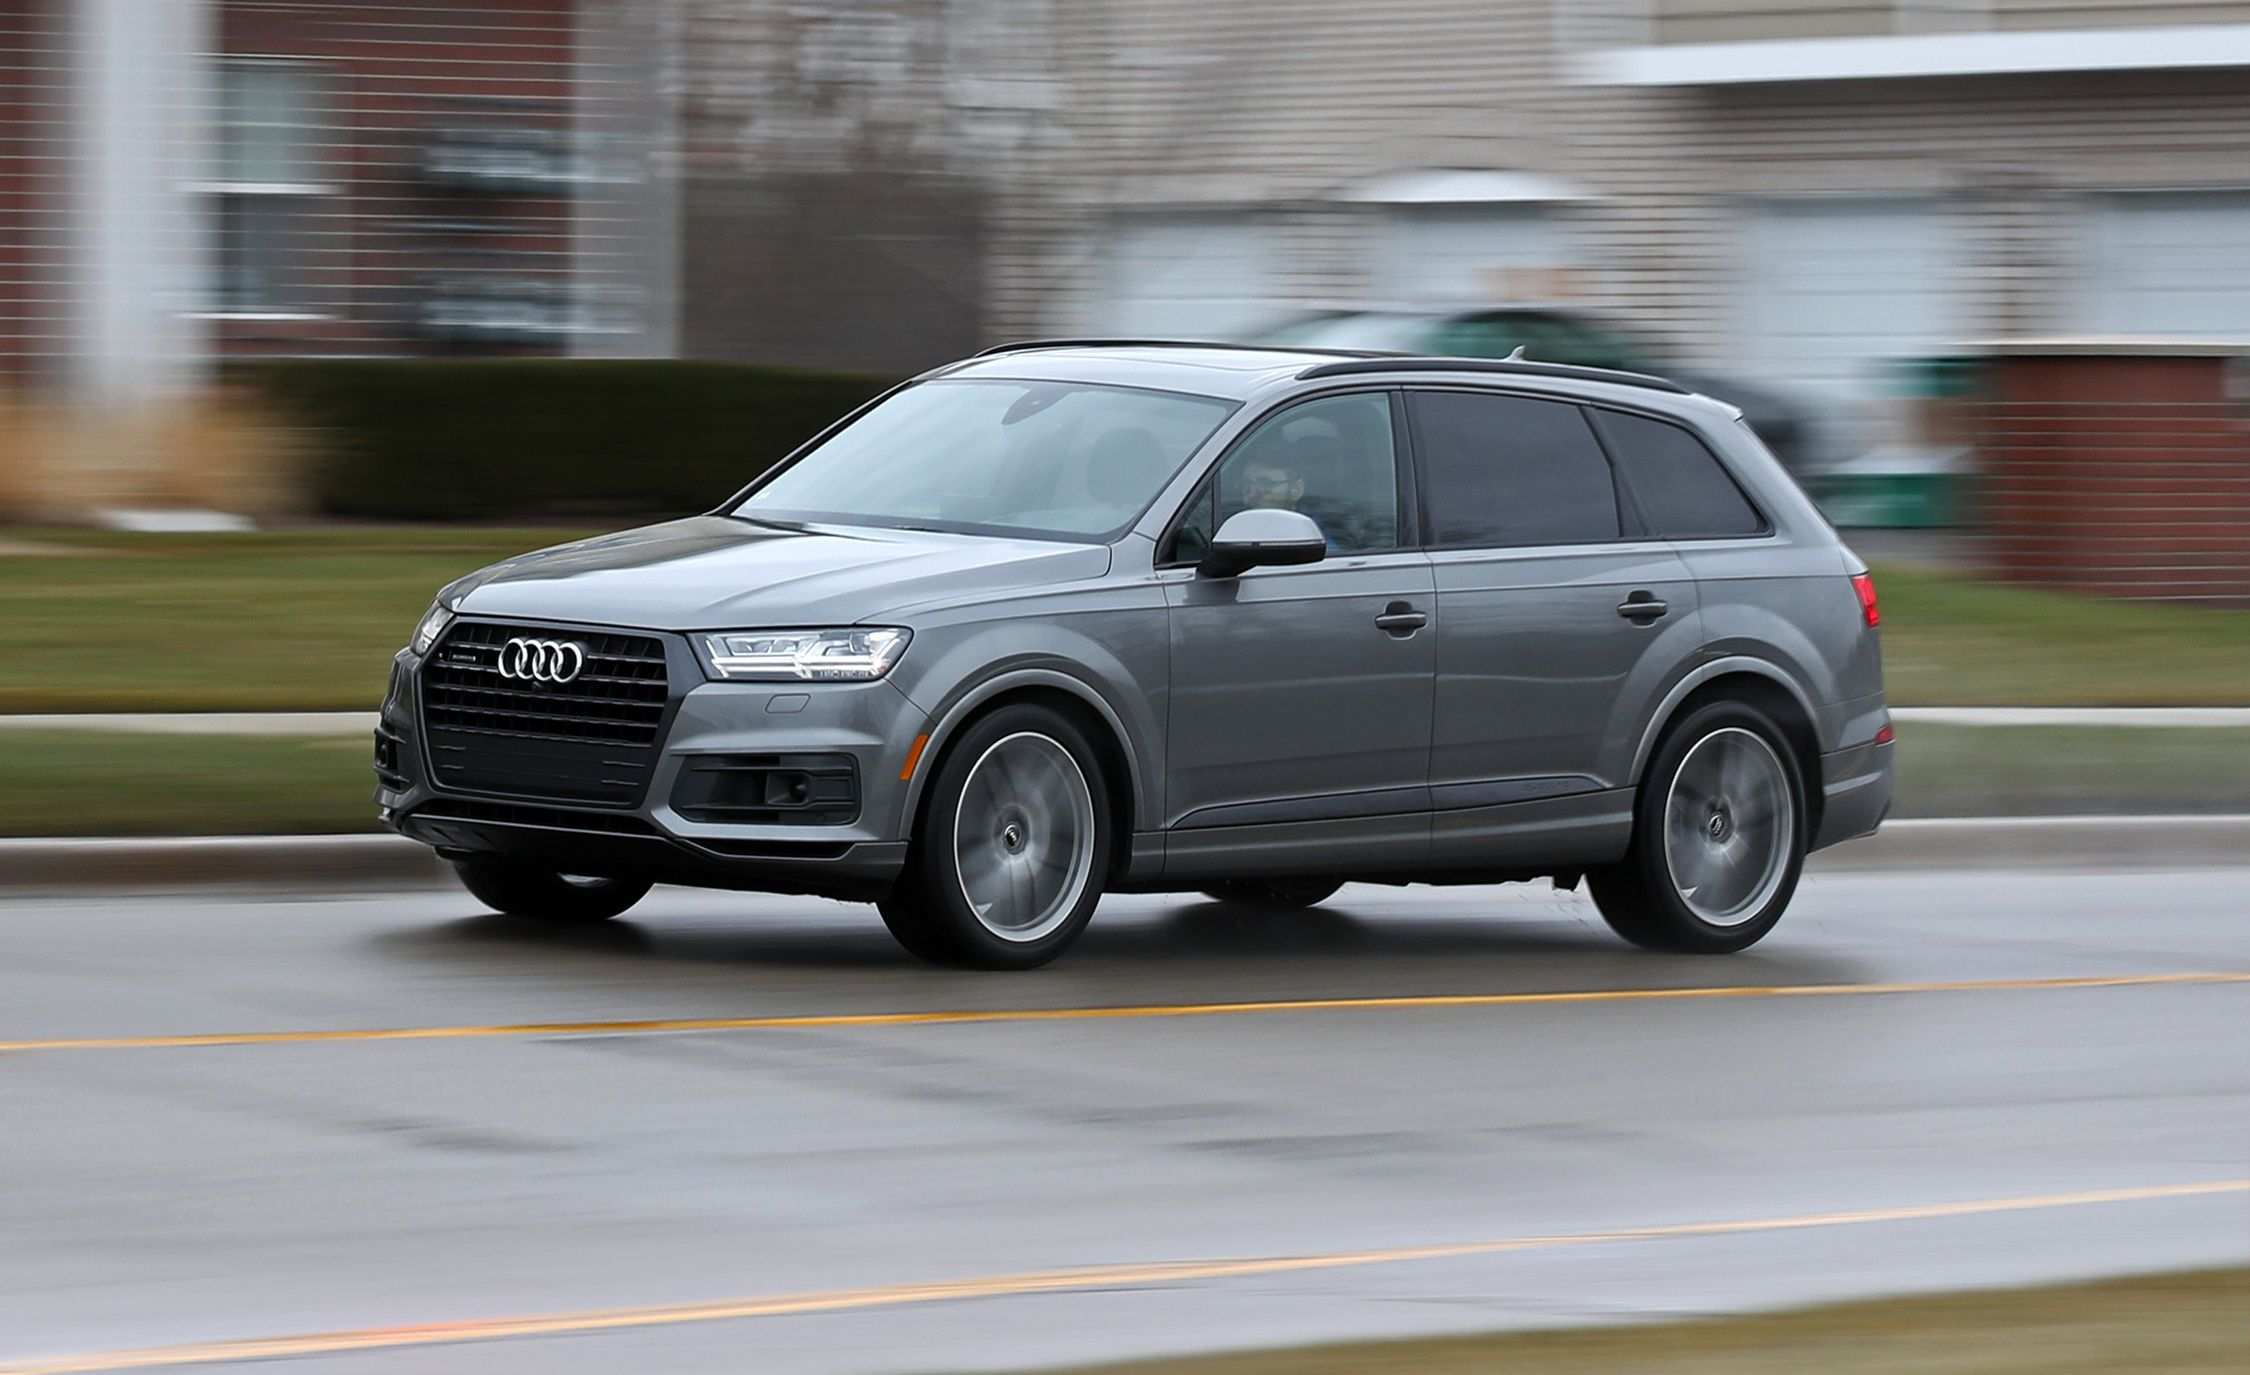 83 The Best Audi Q7 2020 Update Redesign